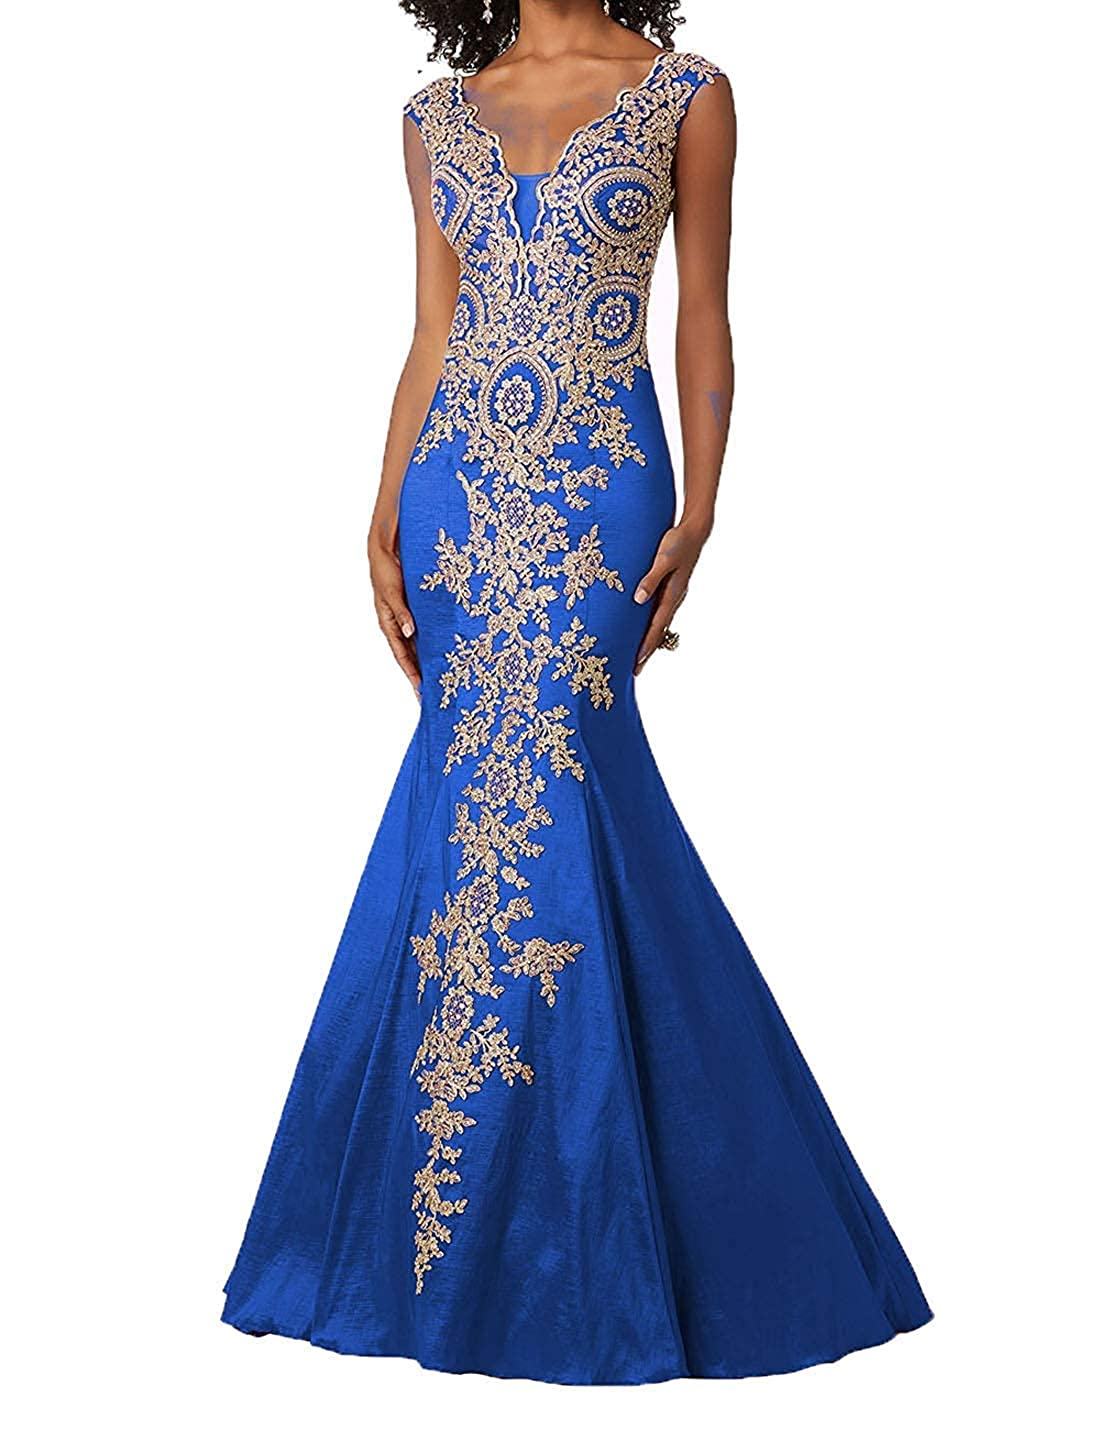 bluee Ruisha Women gold Lace Appliques Mermaid Evening Dresses Sexy V Neck Long Prom Dresses Formal Gown RS0306